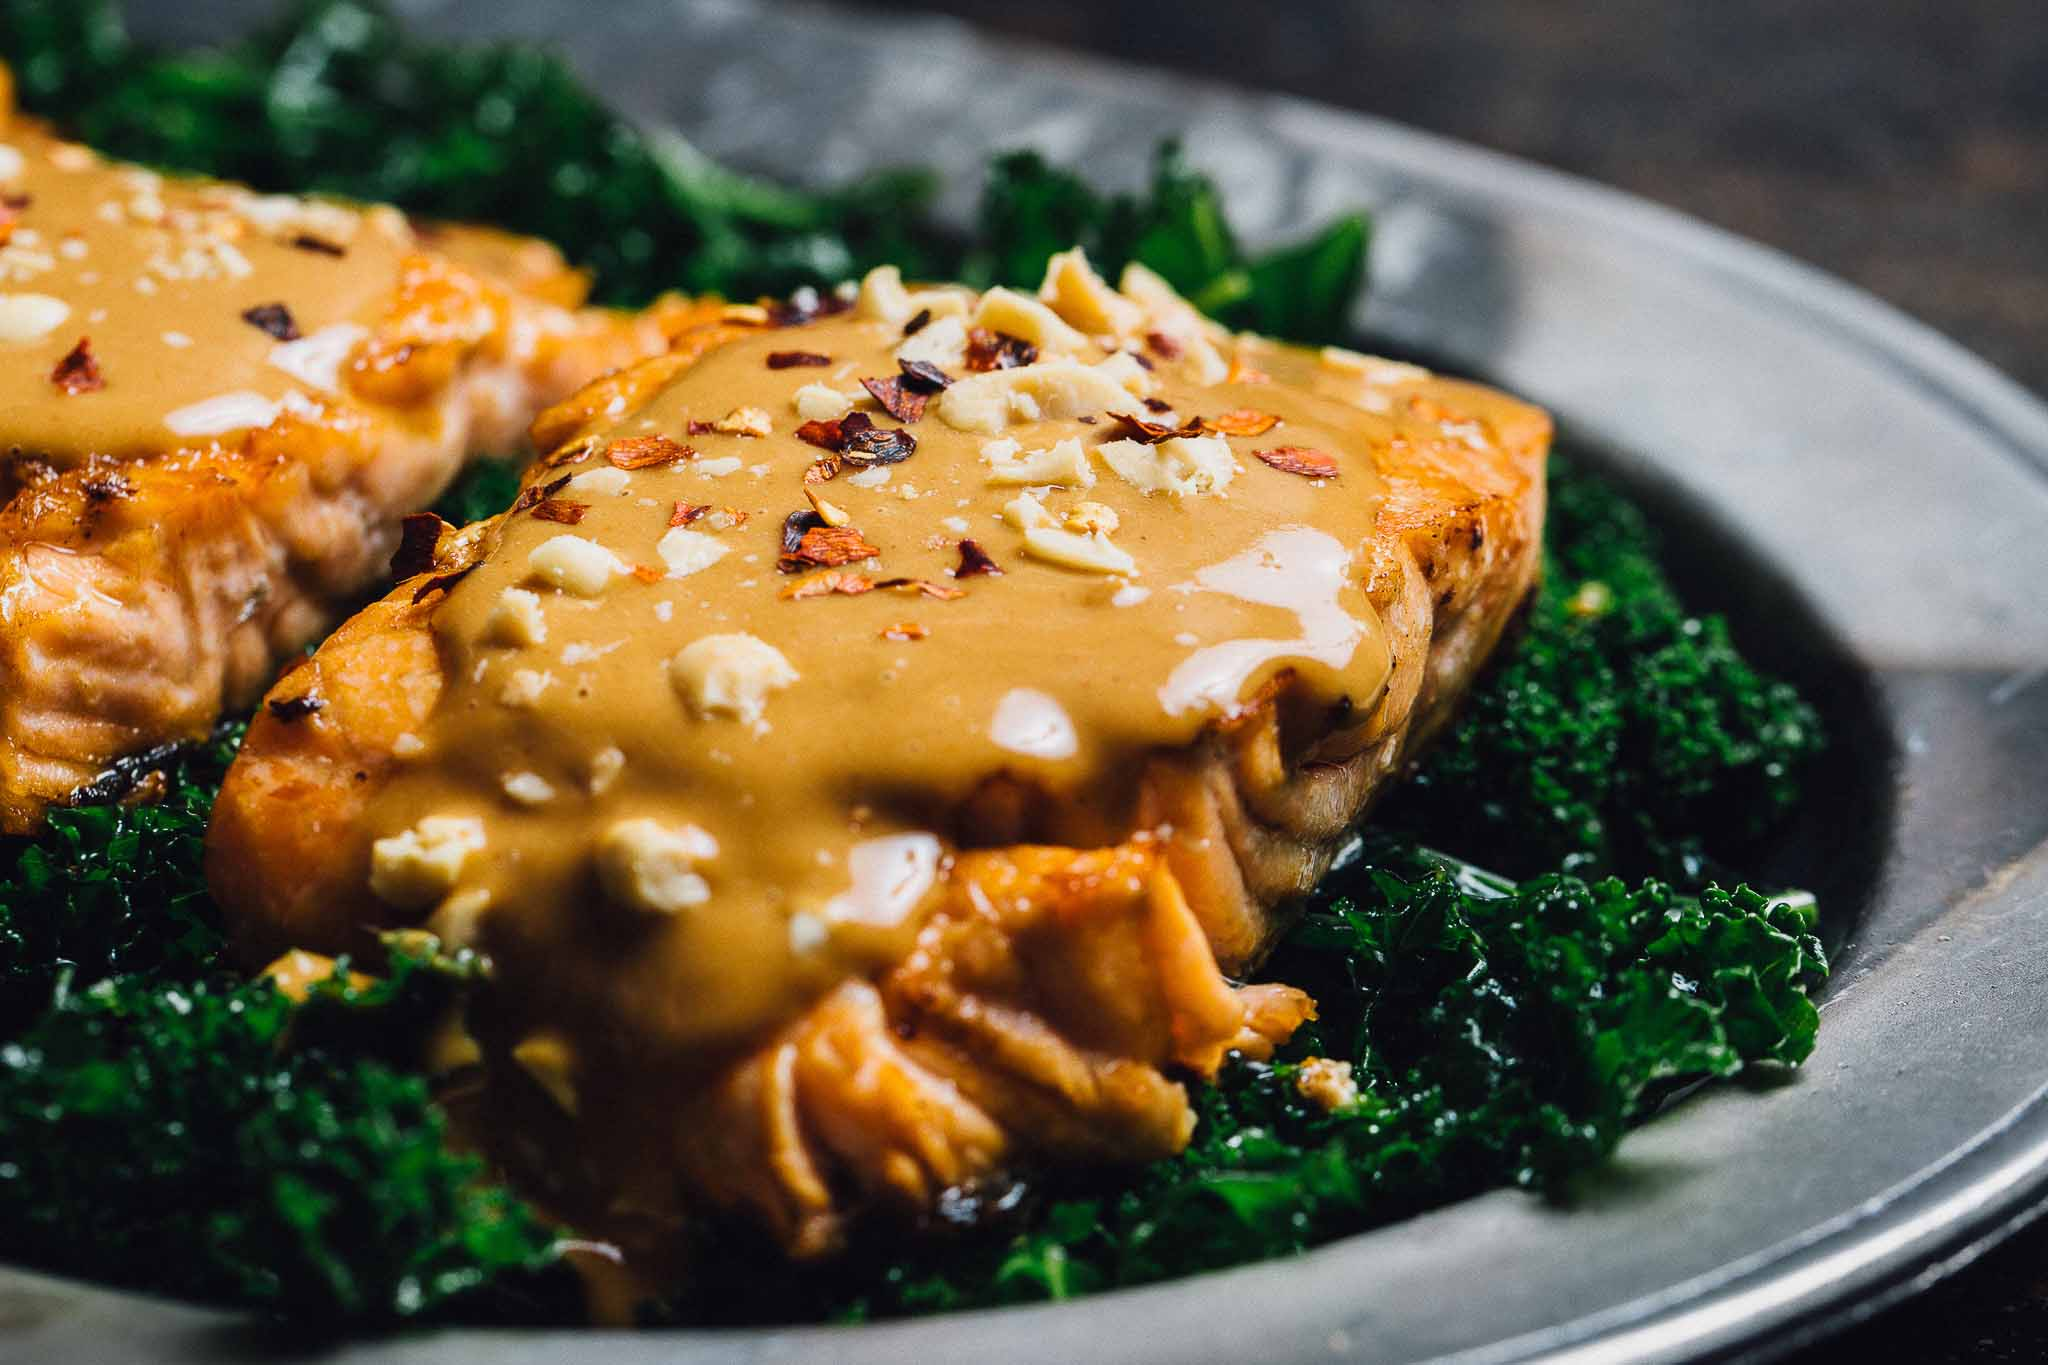 Baked Peanut Salmon: This salmon recipe is perfect for a busy weeknight. Just marinate in the fridge overnight, cook for 20 minutes and you're done!